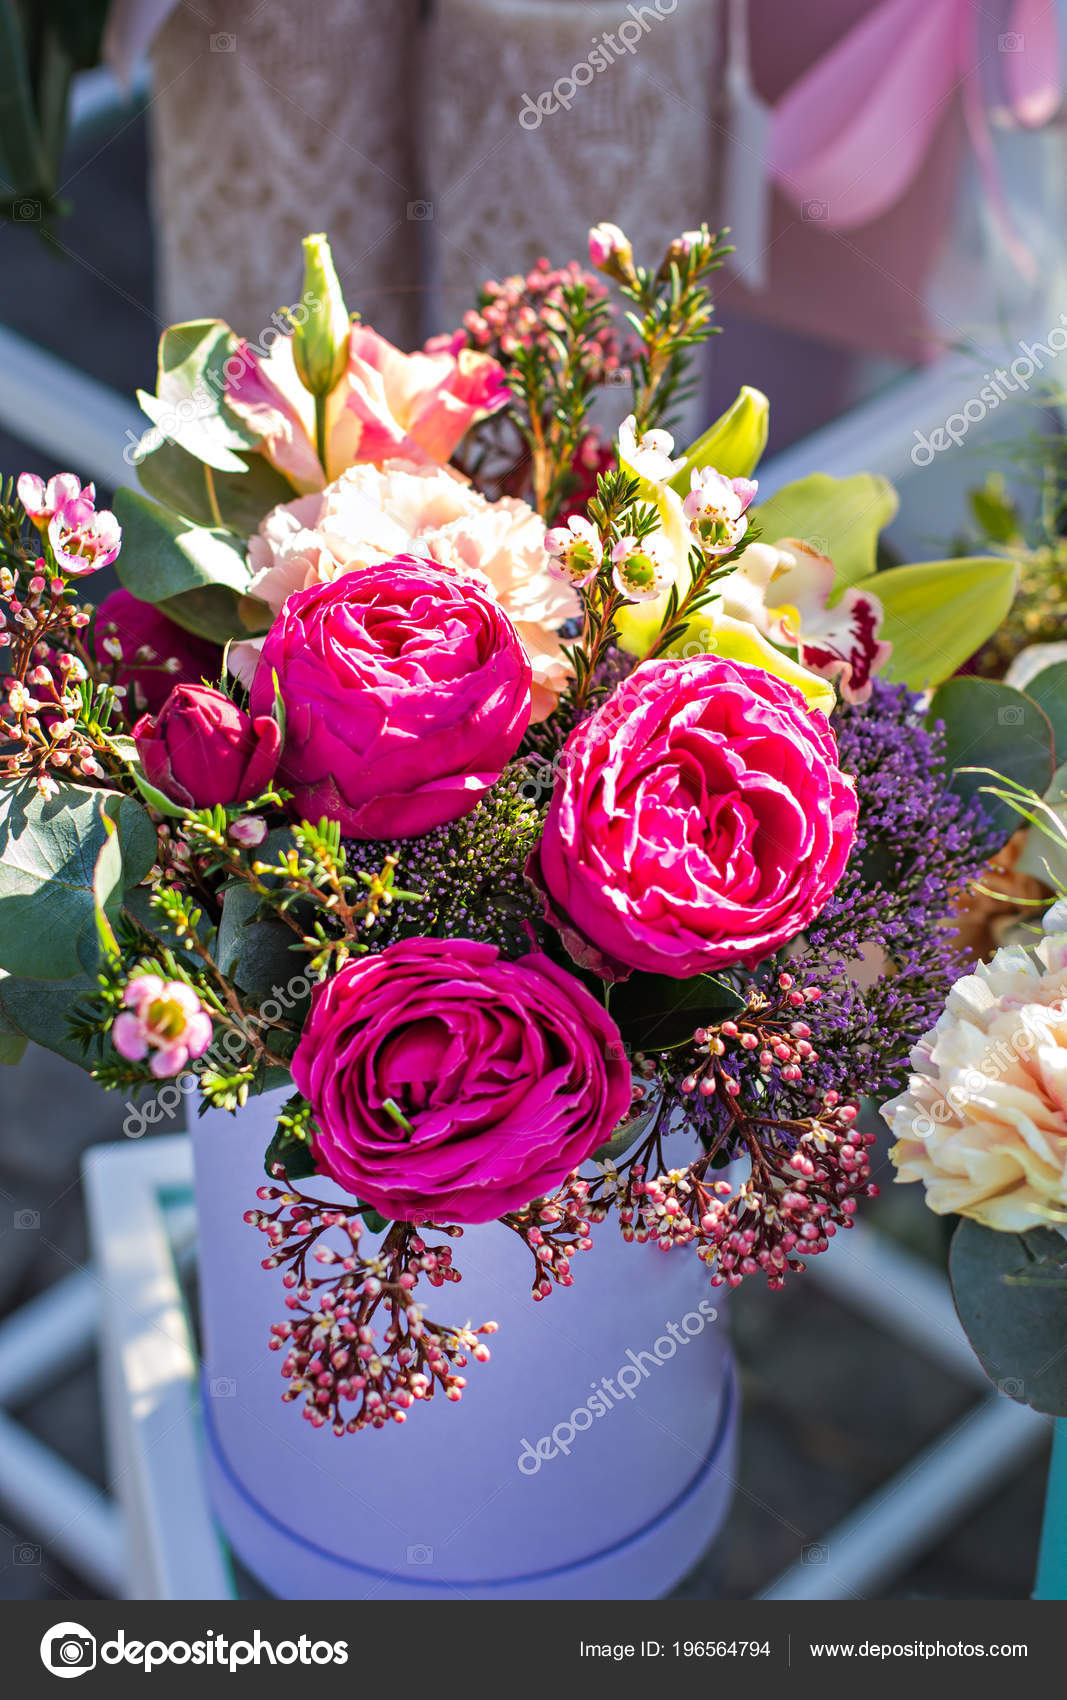 Beautiful bouquets flowers market showcase flowers sale flowers beautiful bouquets of flowers on the market showcase with flowers sale of flowers flower shop a bouquet of roses peonies beautiful flowers izmirmasajfo